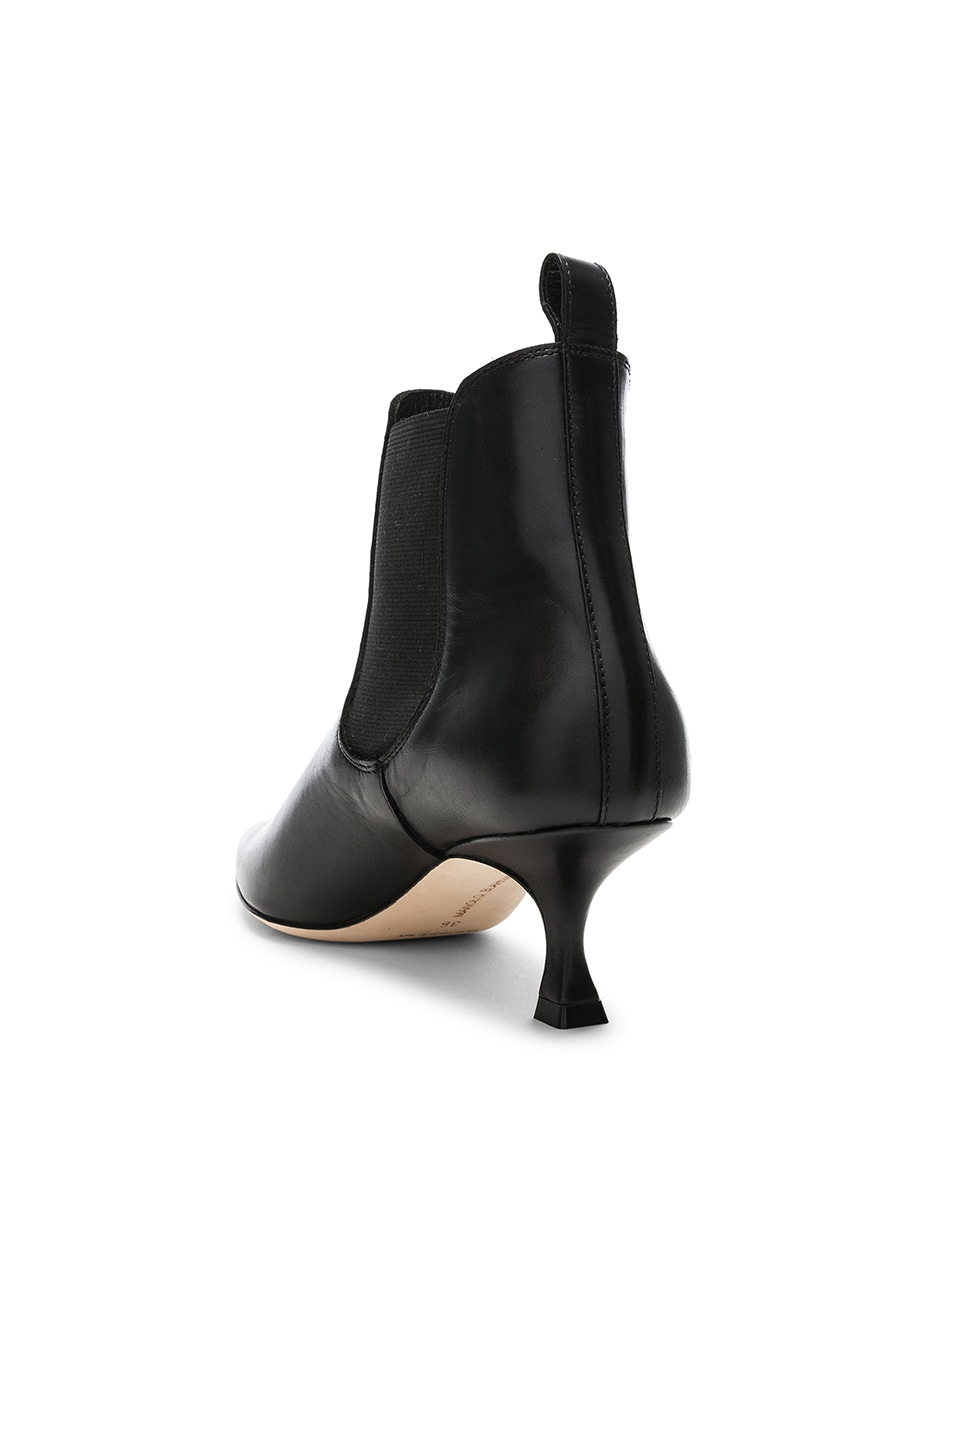 Image 3 of Manolo Blahnik Leather Chelsa 50 Boots in Black